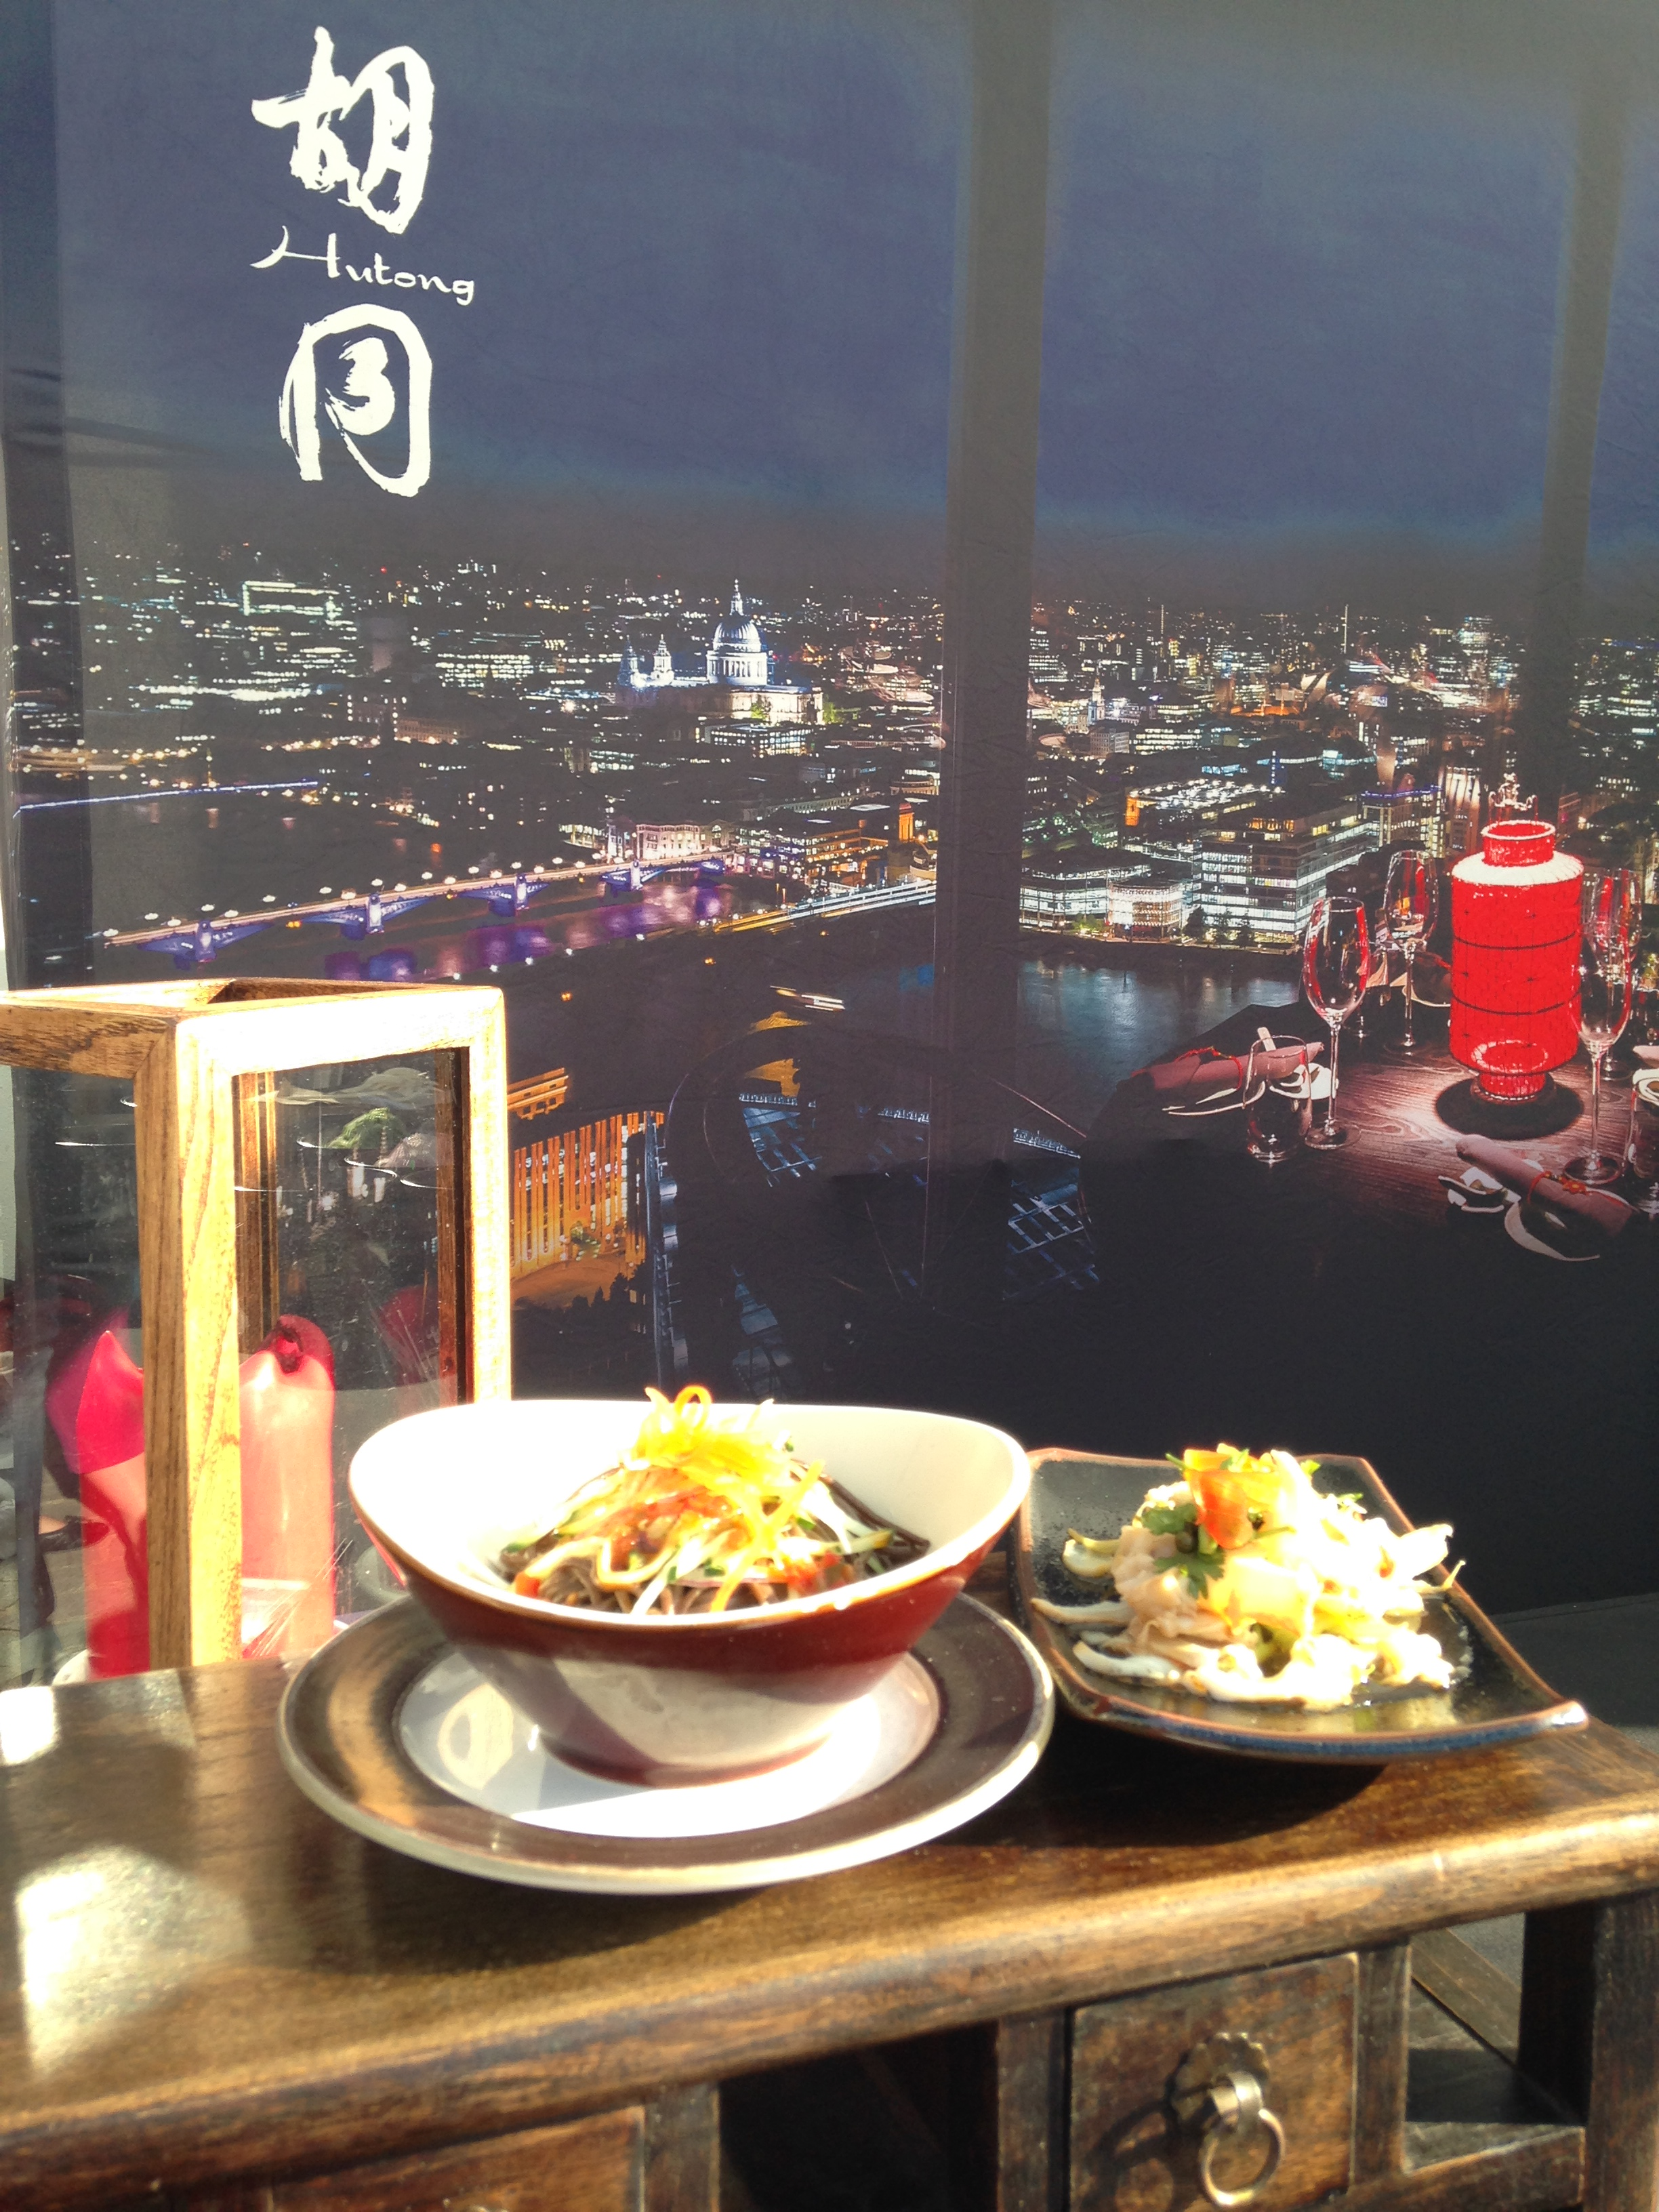 Our pop-up Hutong stall